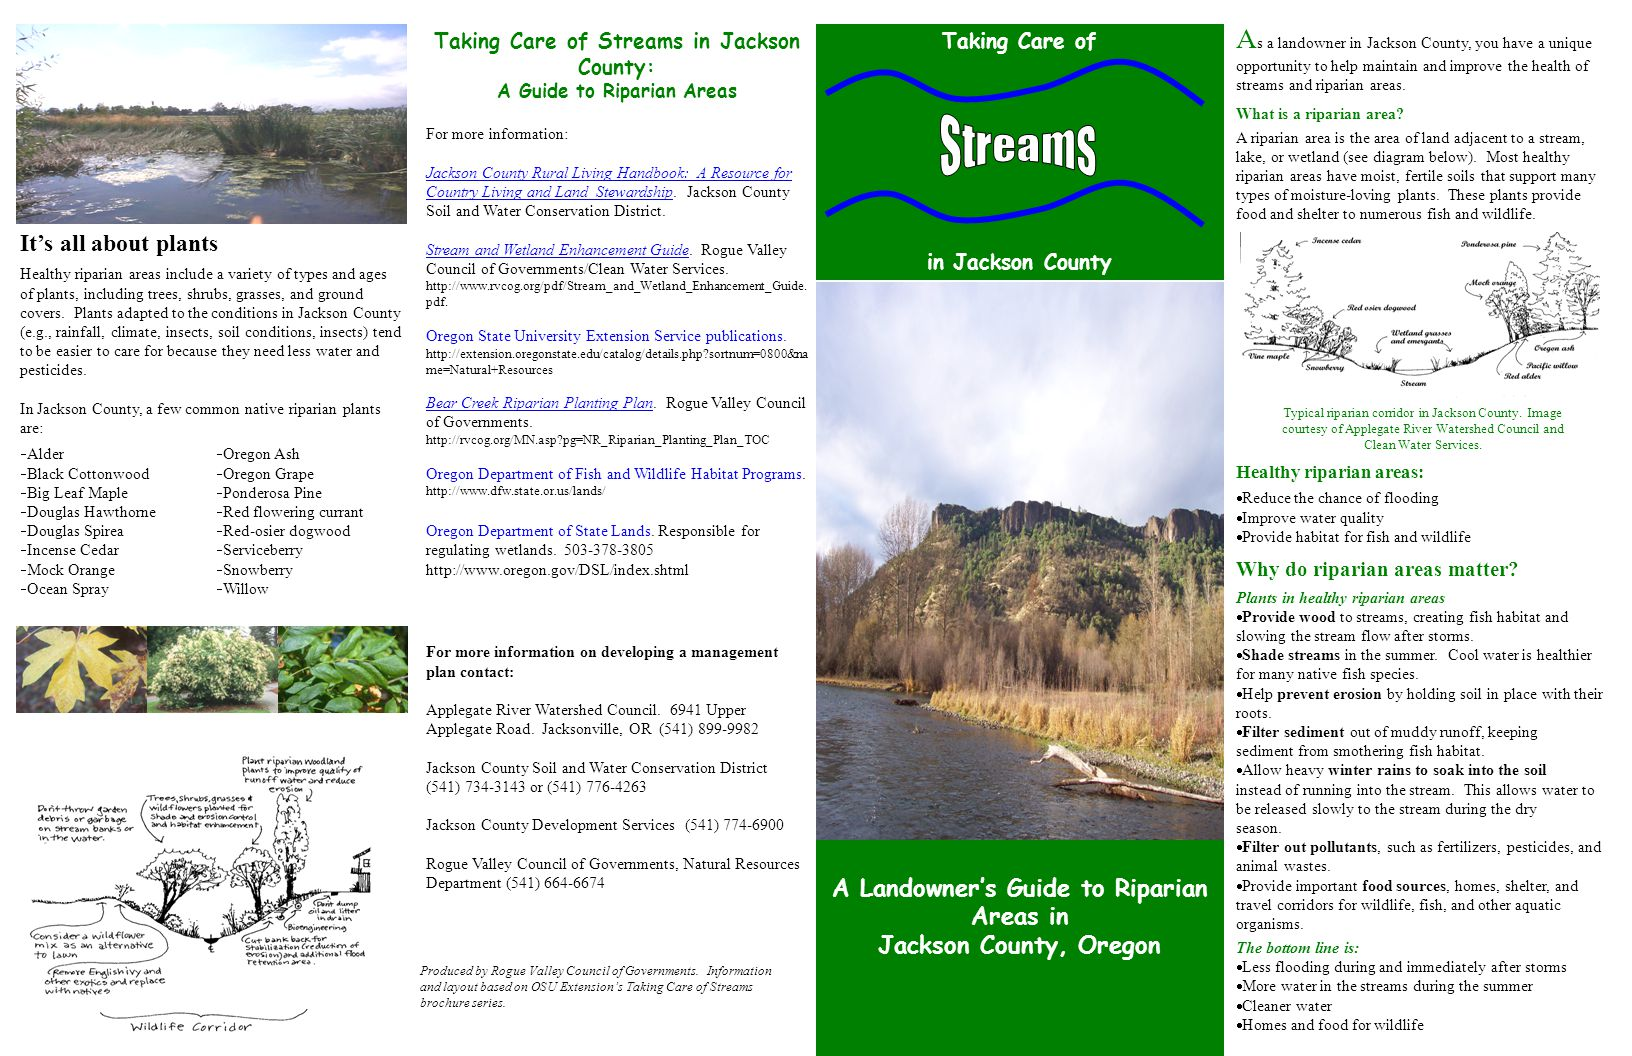 A Landowner's Guide to Riparian Areas in Jackson County, Oregon Taking Care of in Jackson County Taking Care of Streams in Jackson County: A Guide to Riparian Areas For more information: Jackson County Rural Living Handbook: A Resource for Country Living and Land Stewardship.